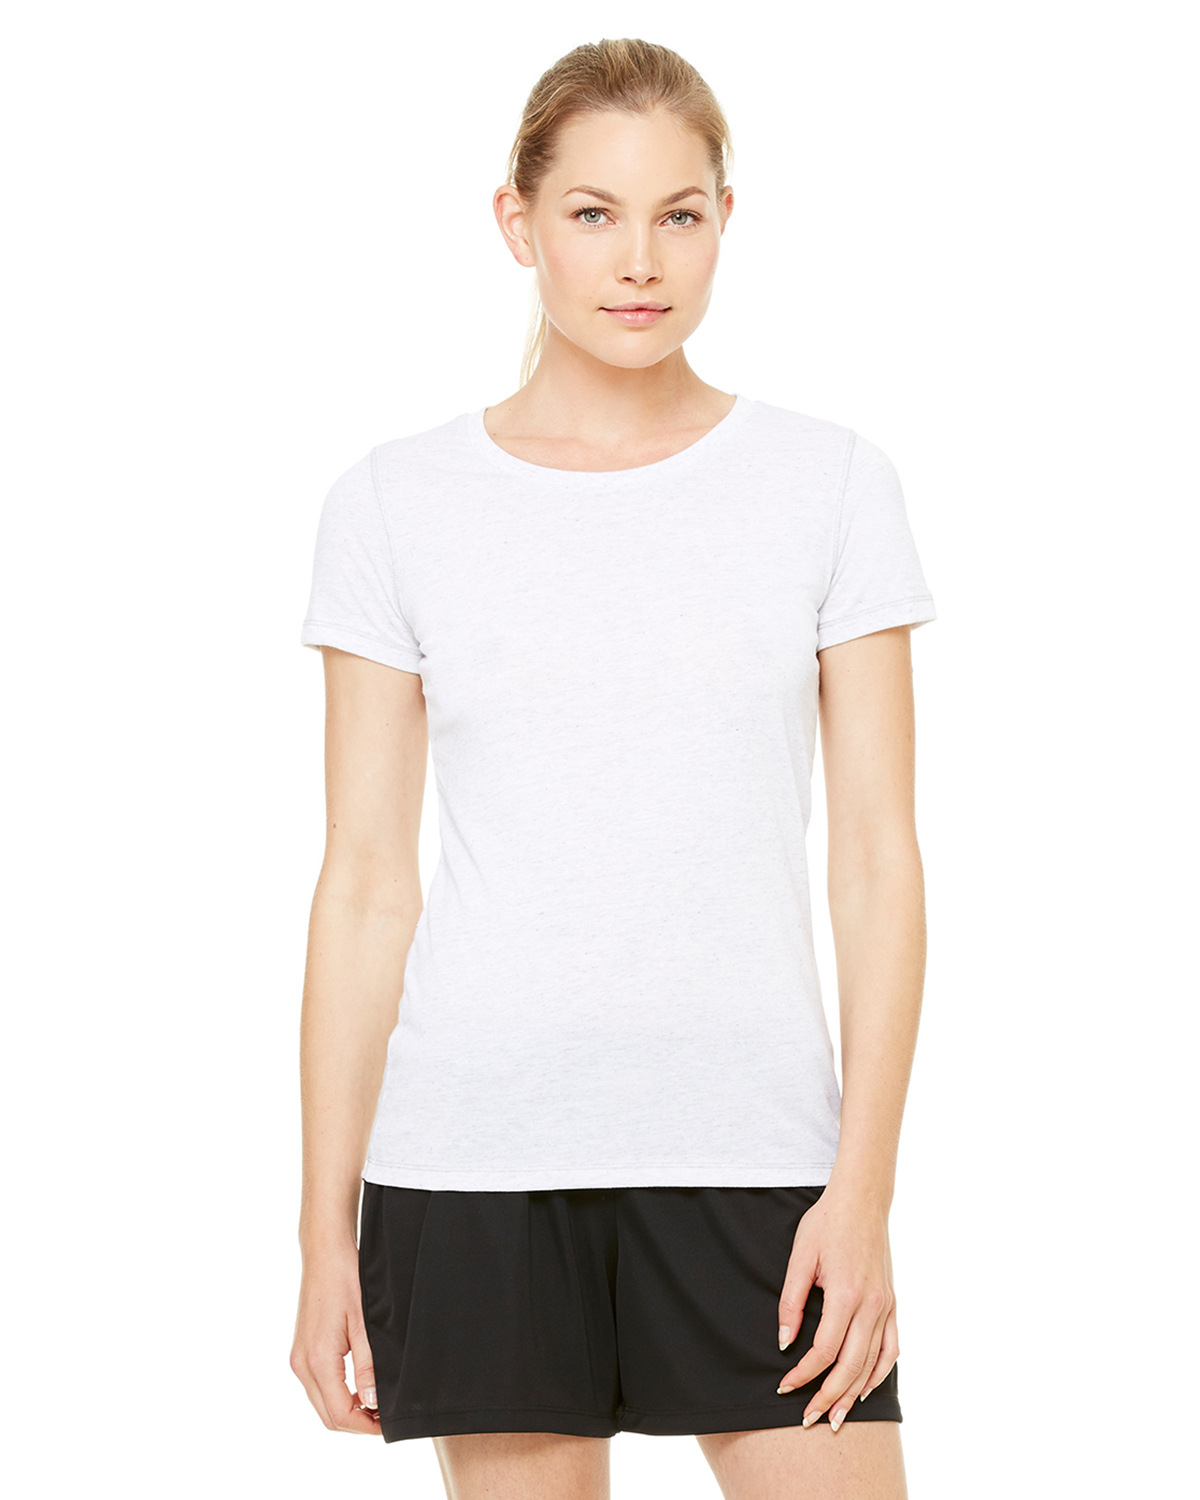 Ladies' Performance Triblend Short-Sleeve T-Shirt